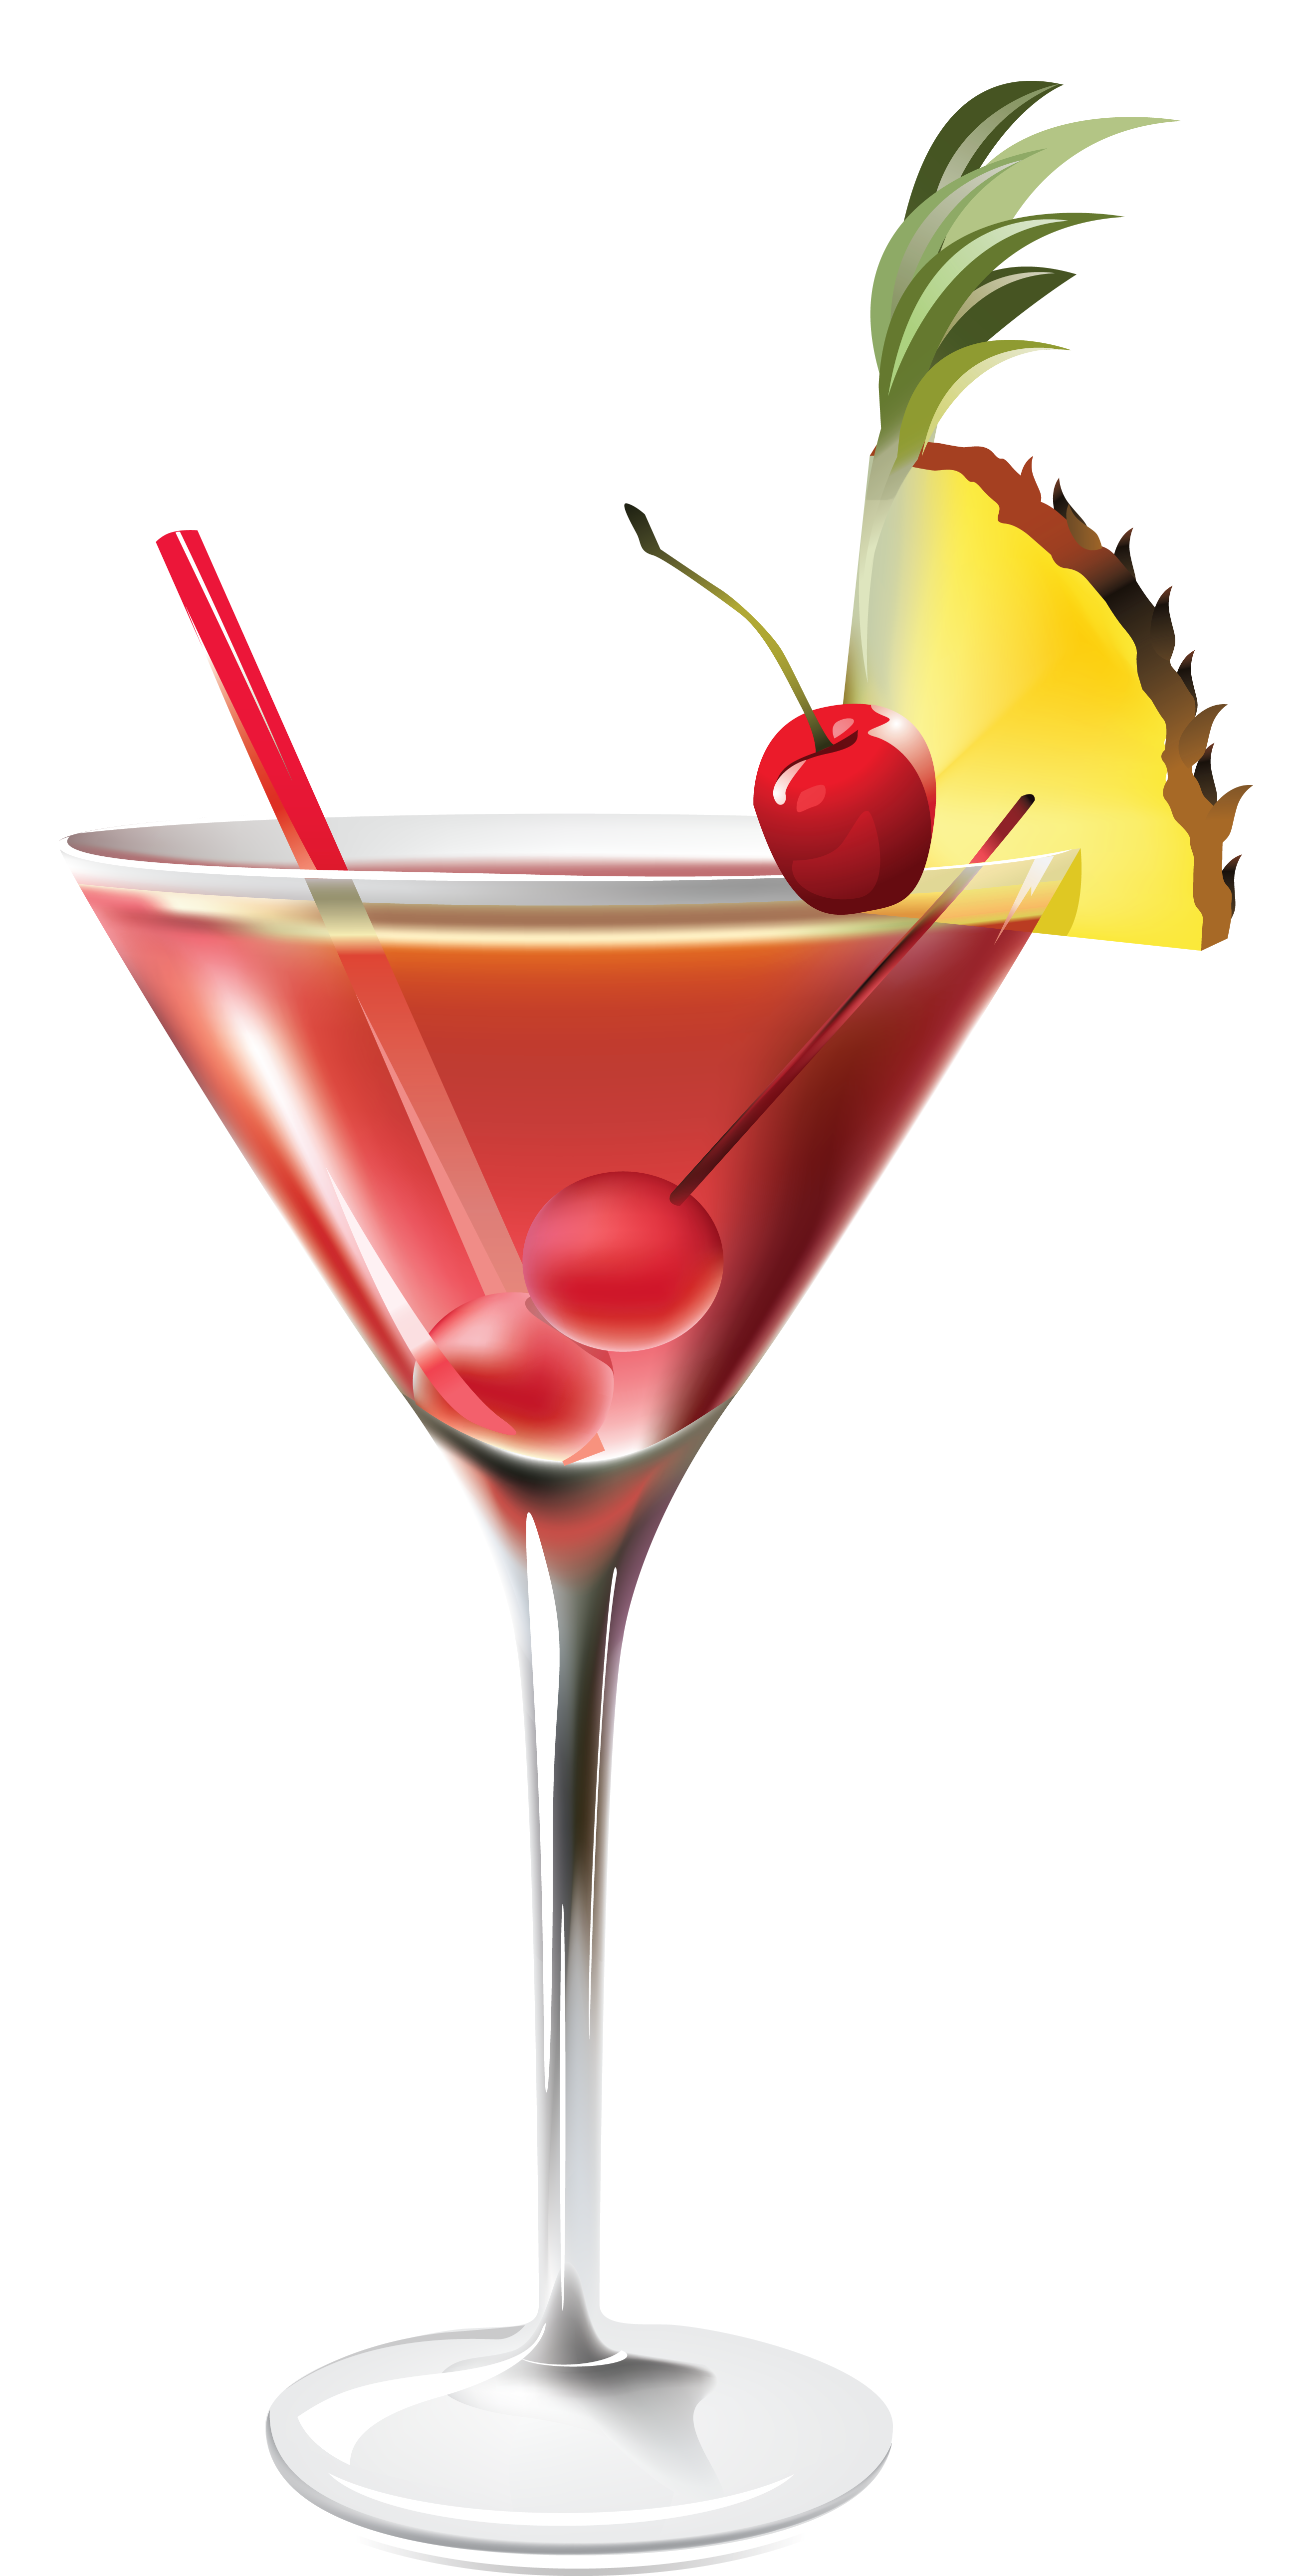 Cocktails clipart christmas. Cocktail with pineapple png